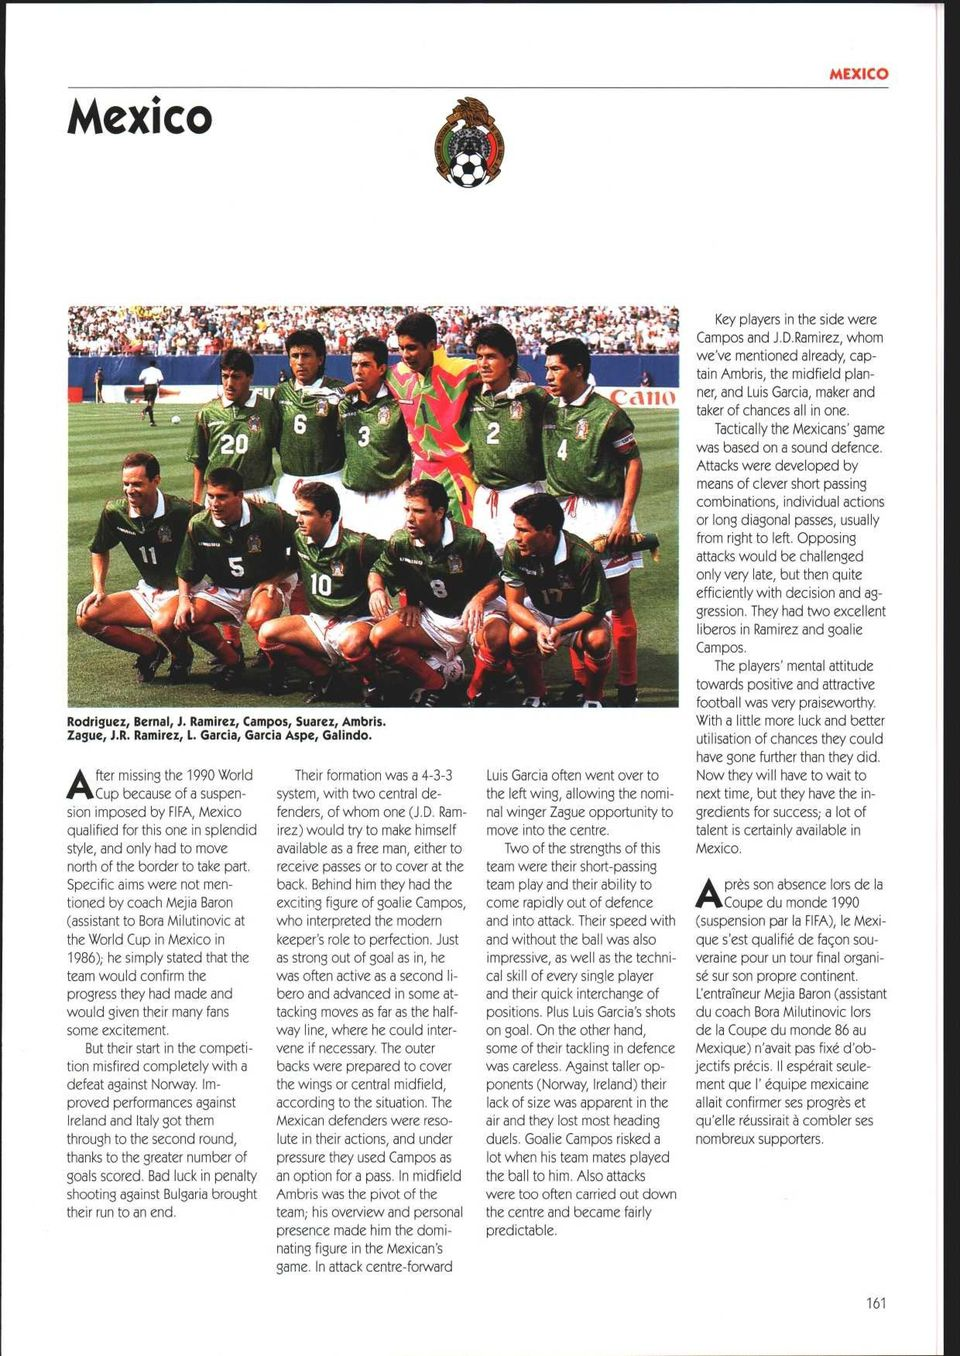 in Mexico in 1986) ; he simply stated that the team would confirm the progress they had made and would given their many fans some excitement But their start in the competition misfired completely